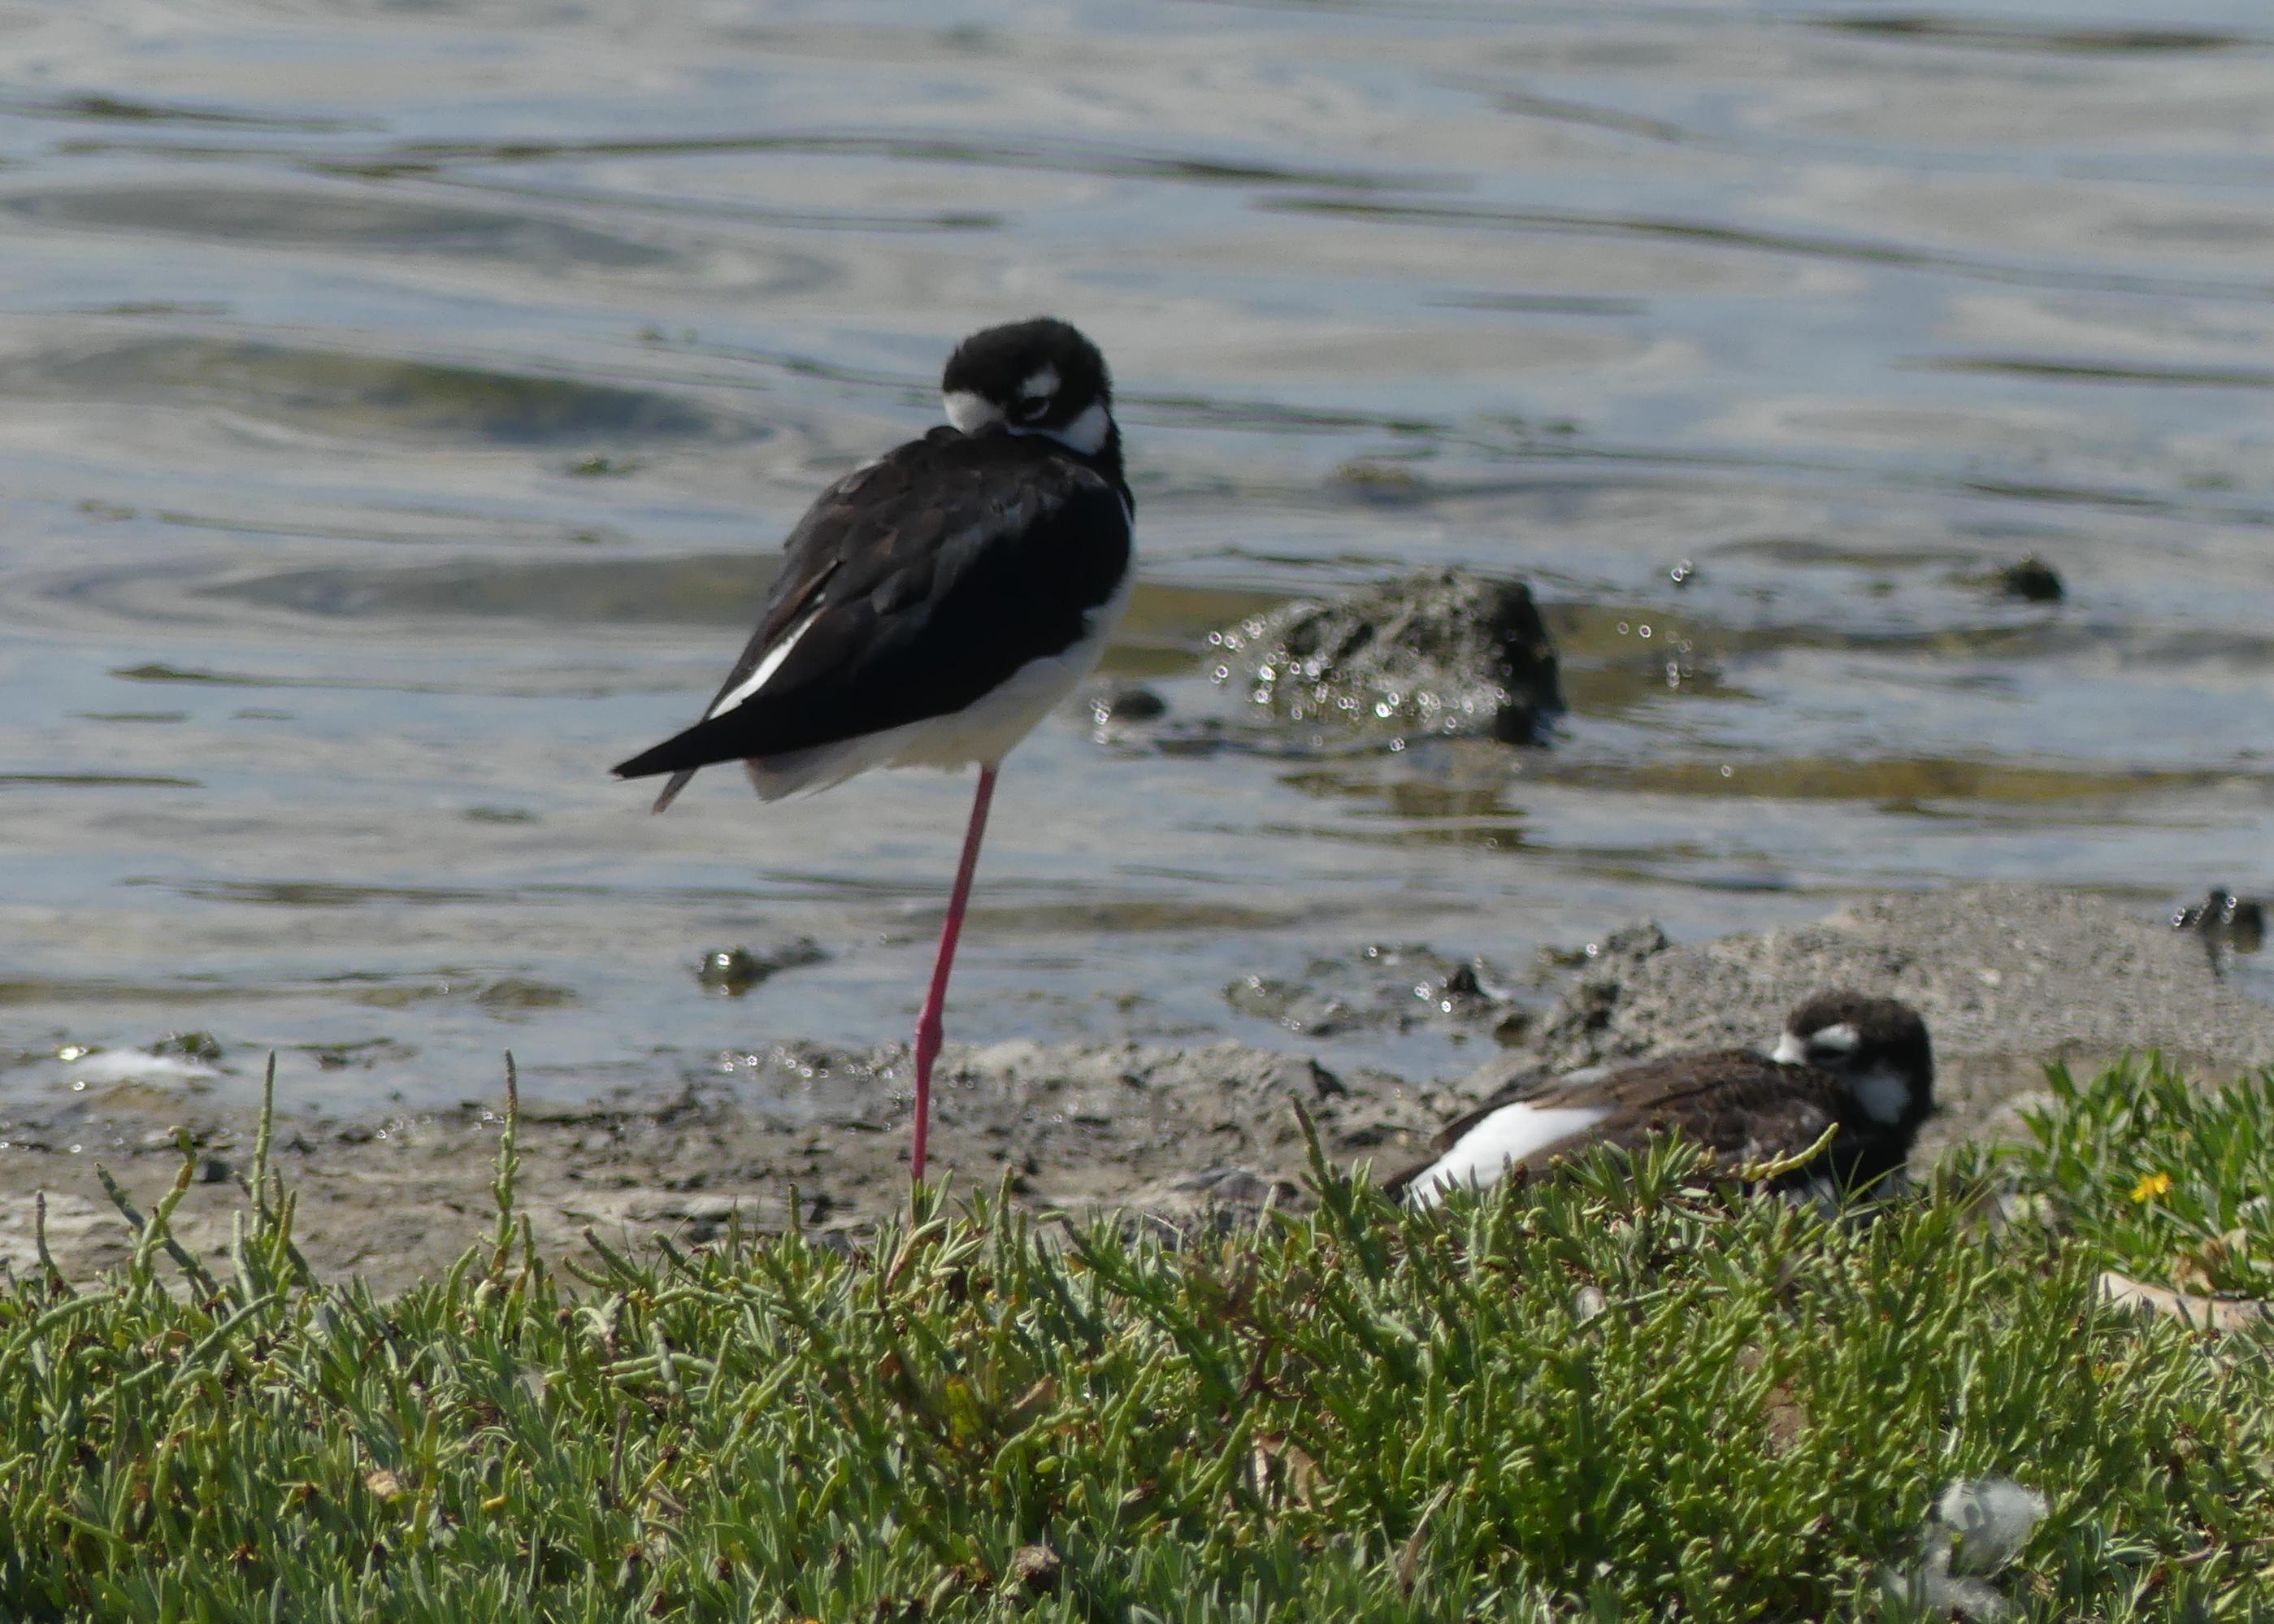 Napping Black-necked stilt